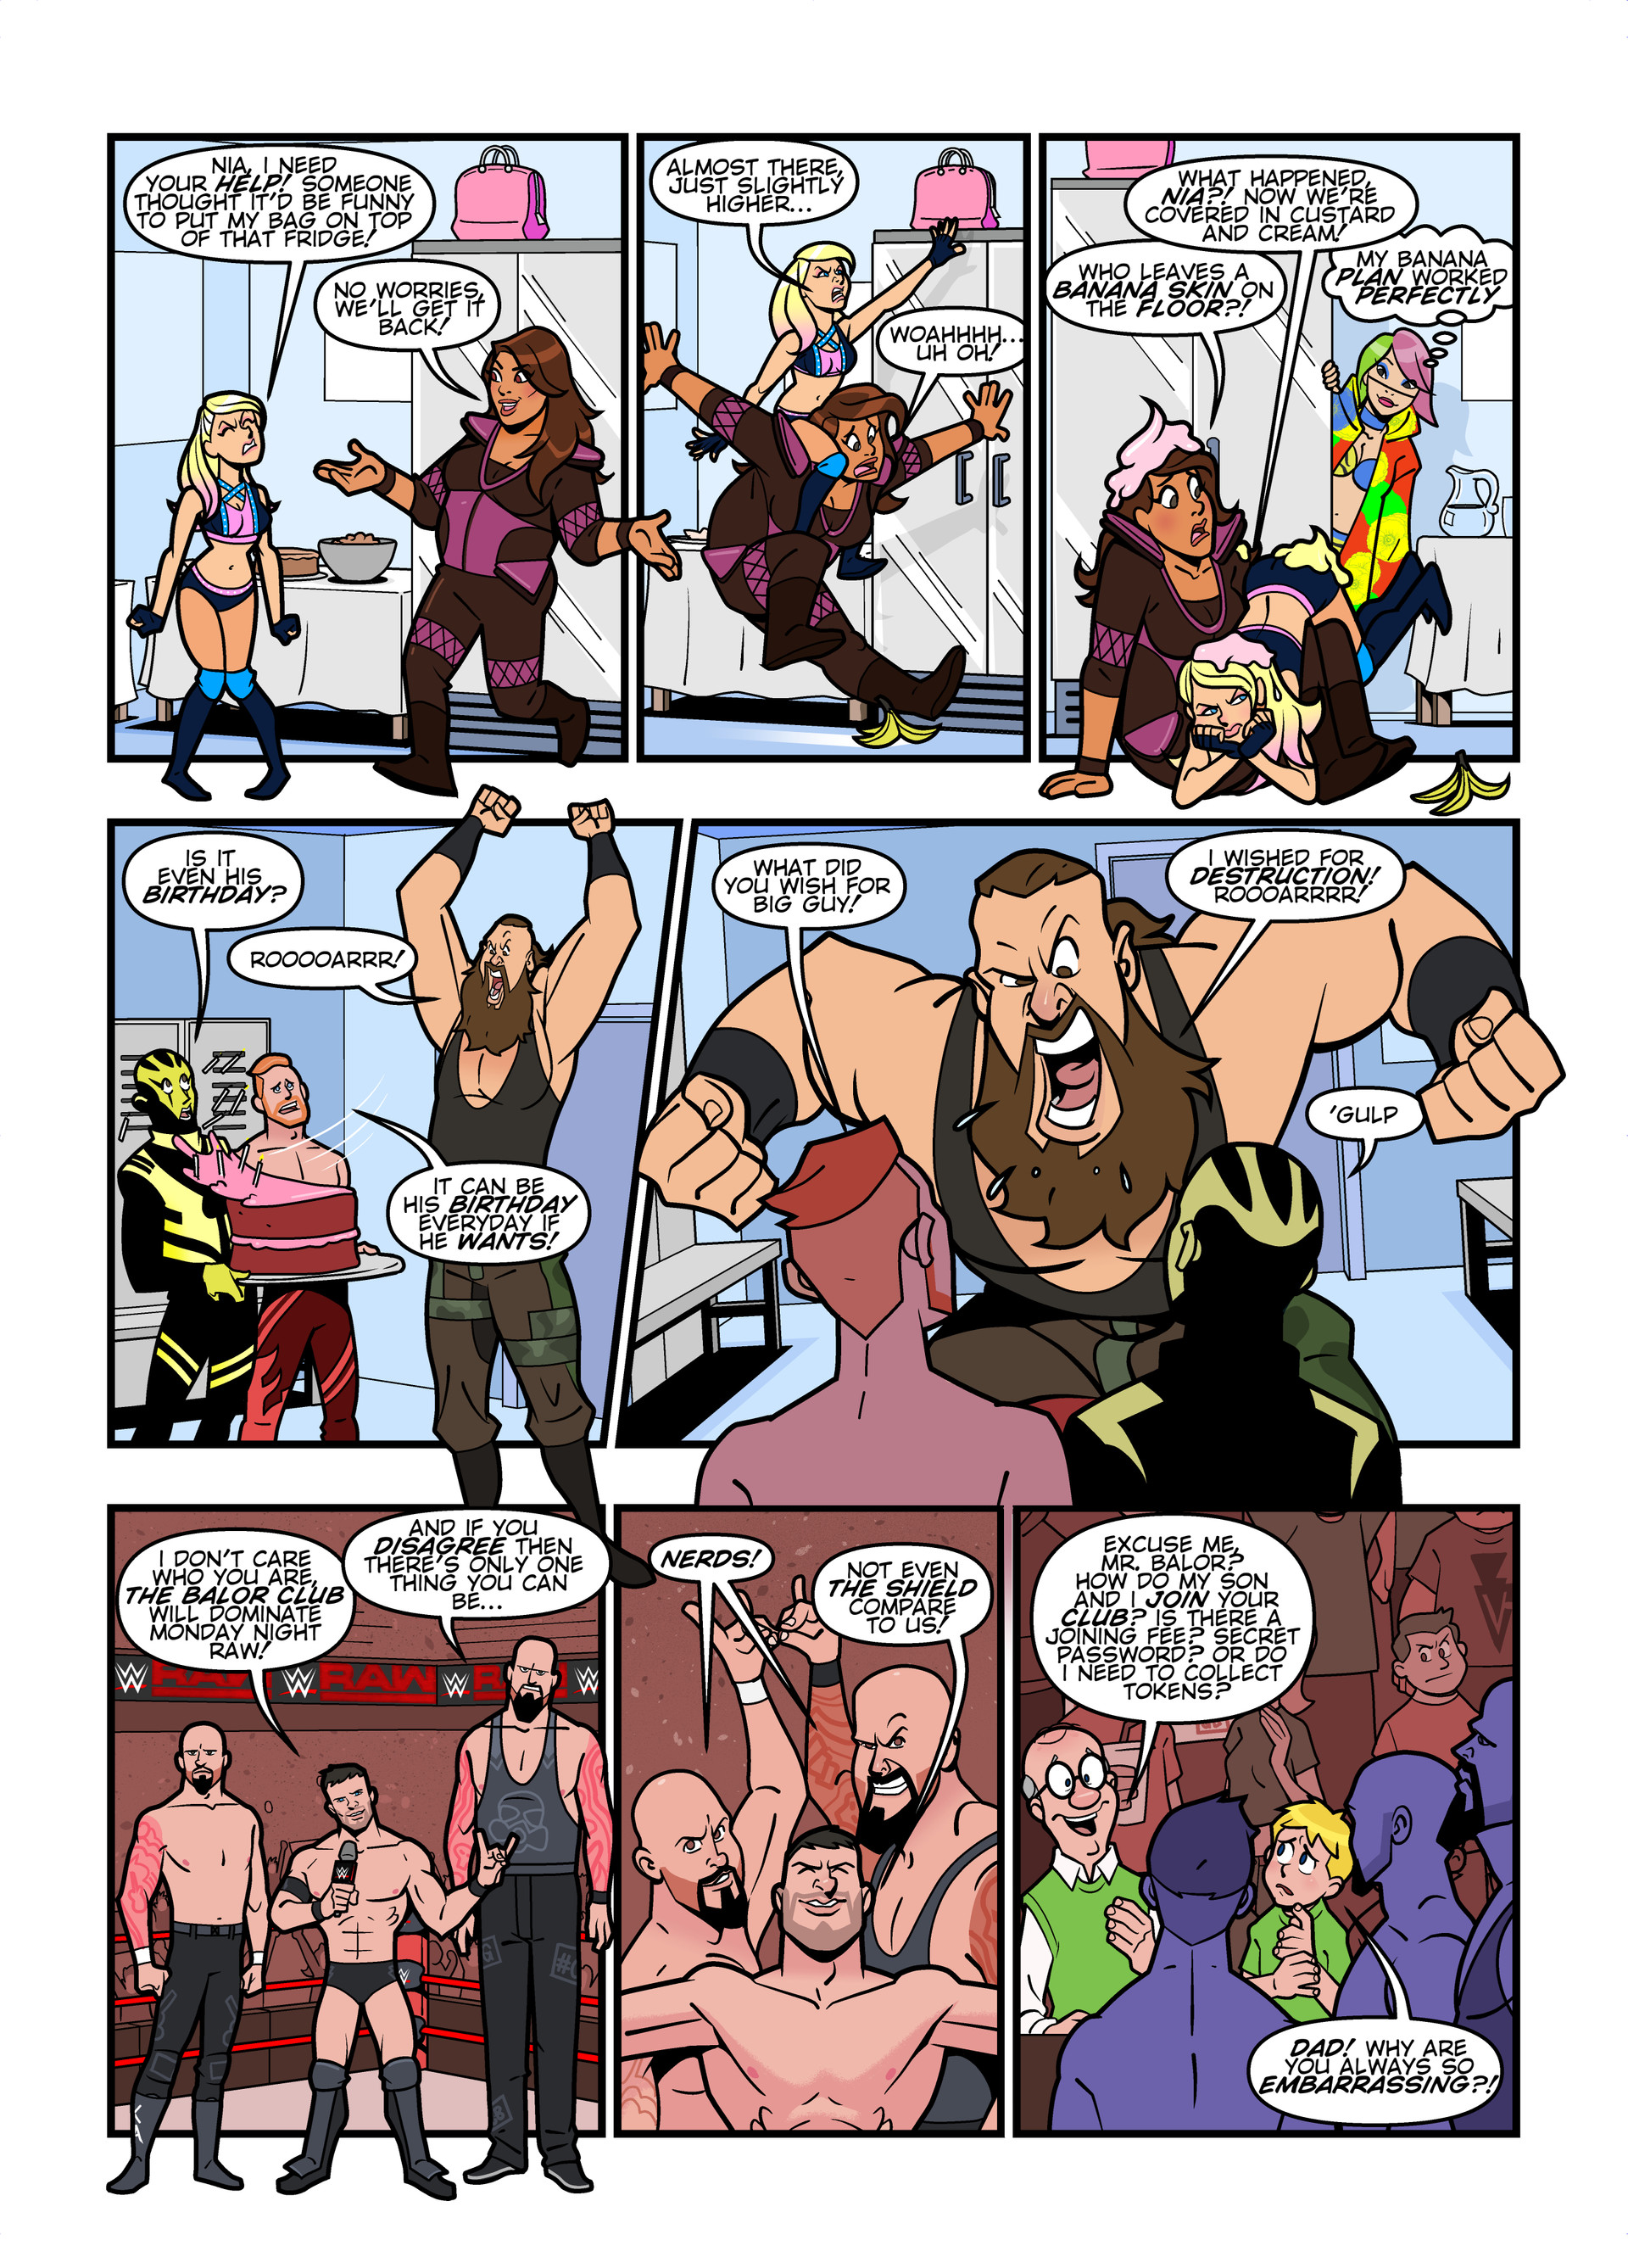 WWE RAW comic strips for WWE Kids Magazine #134